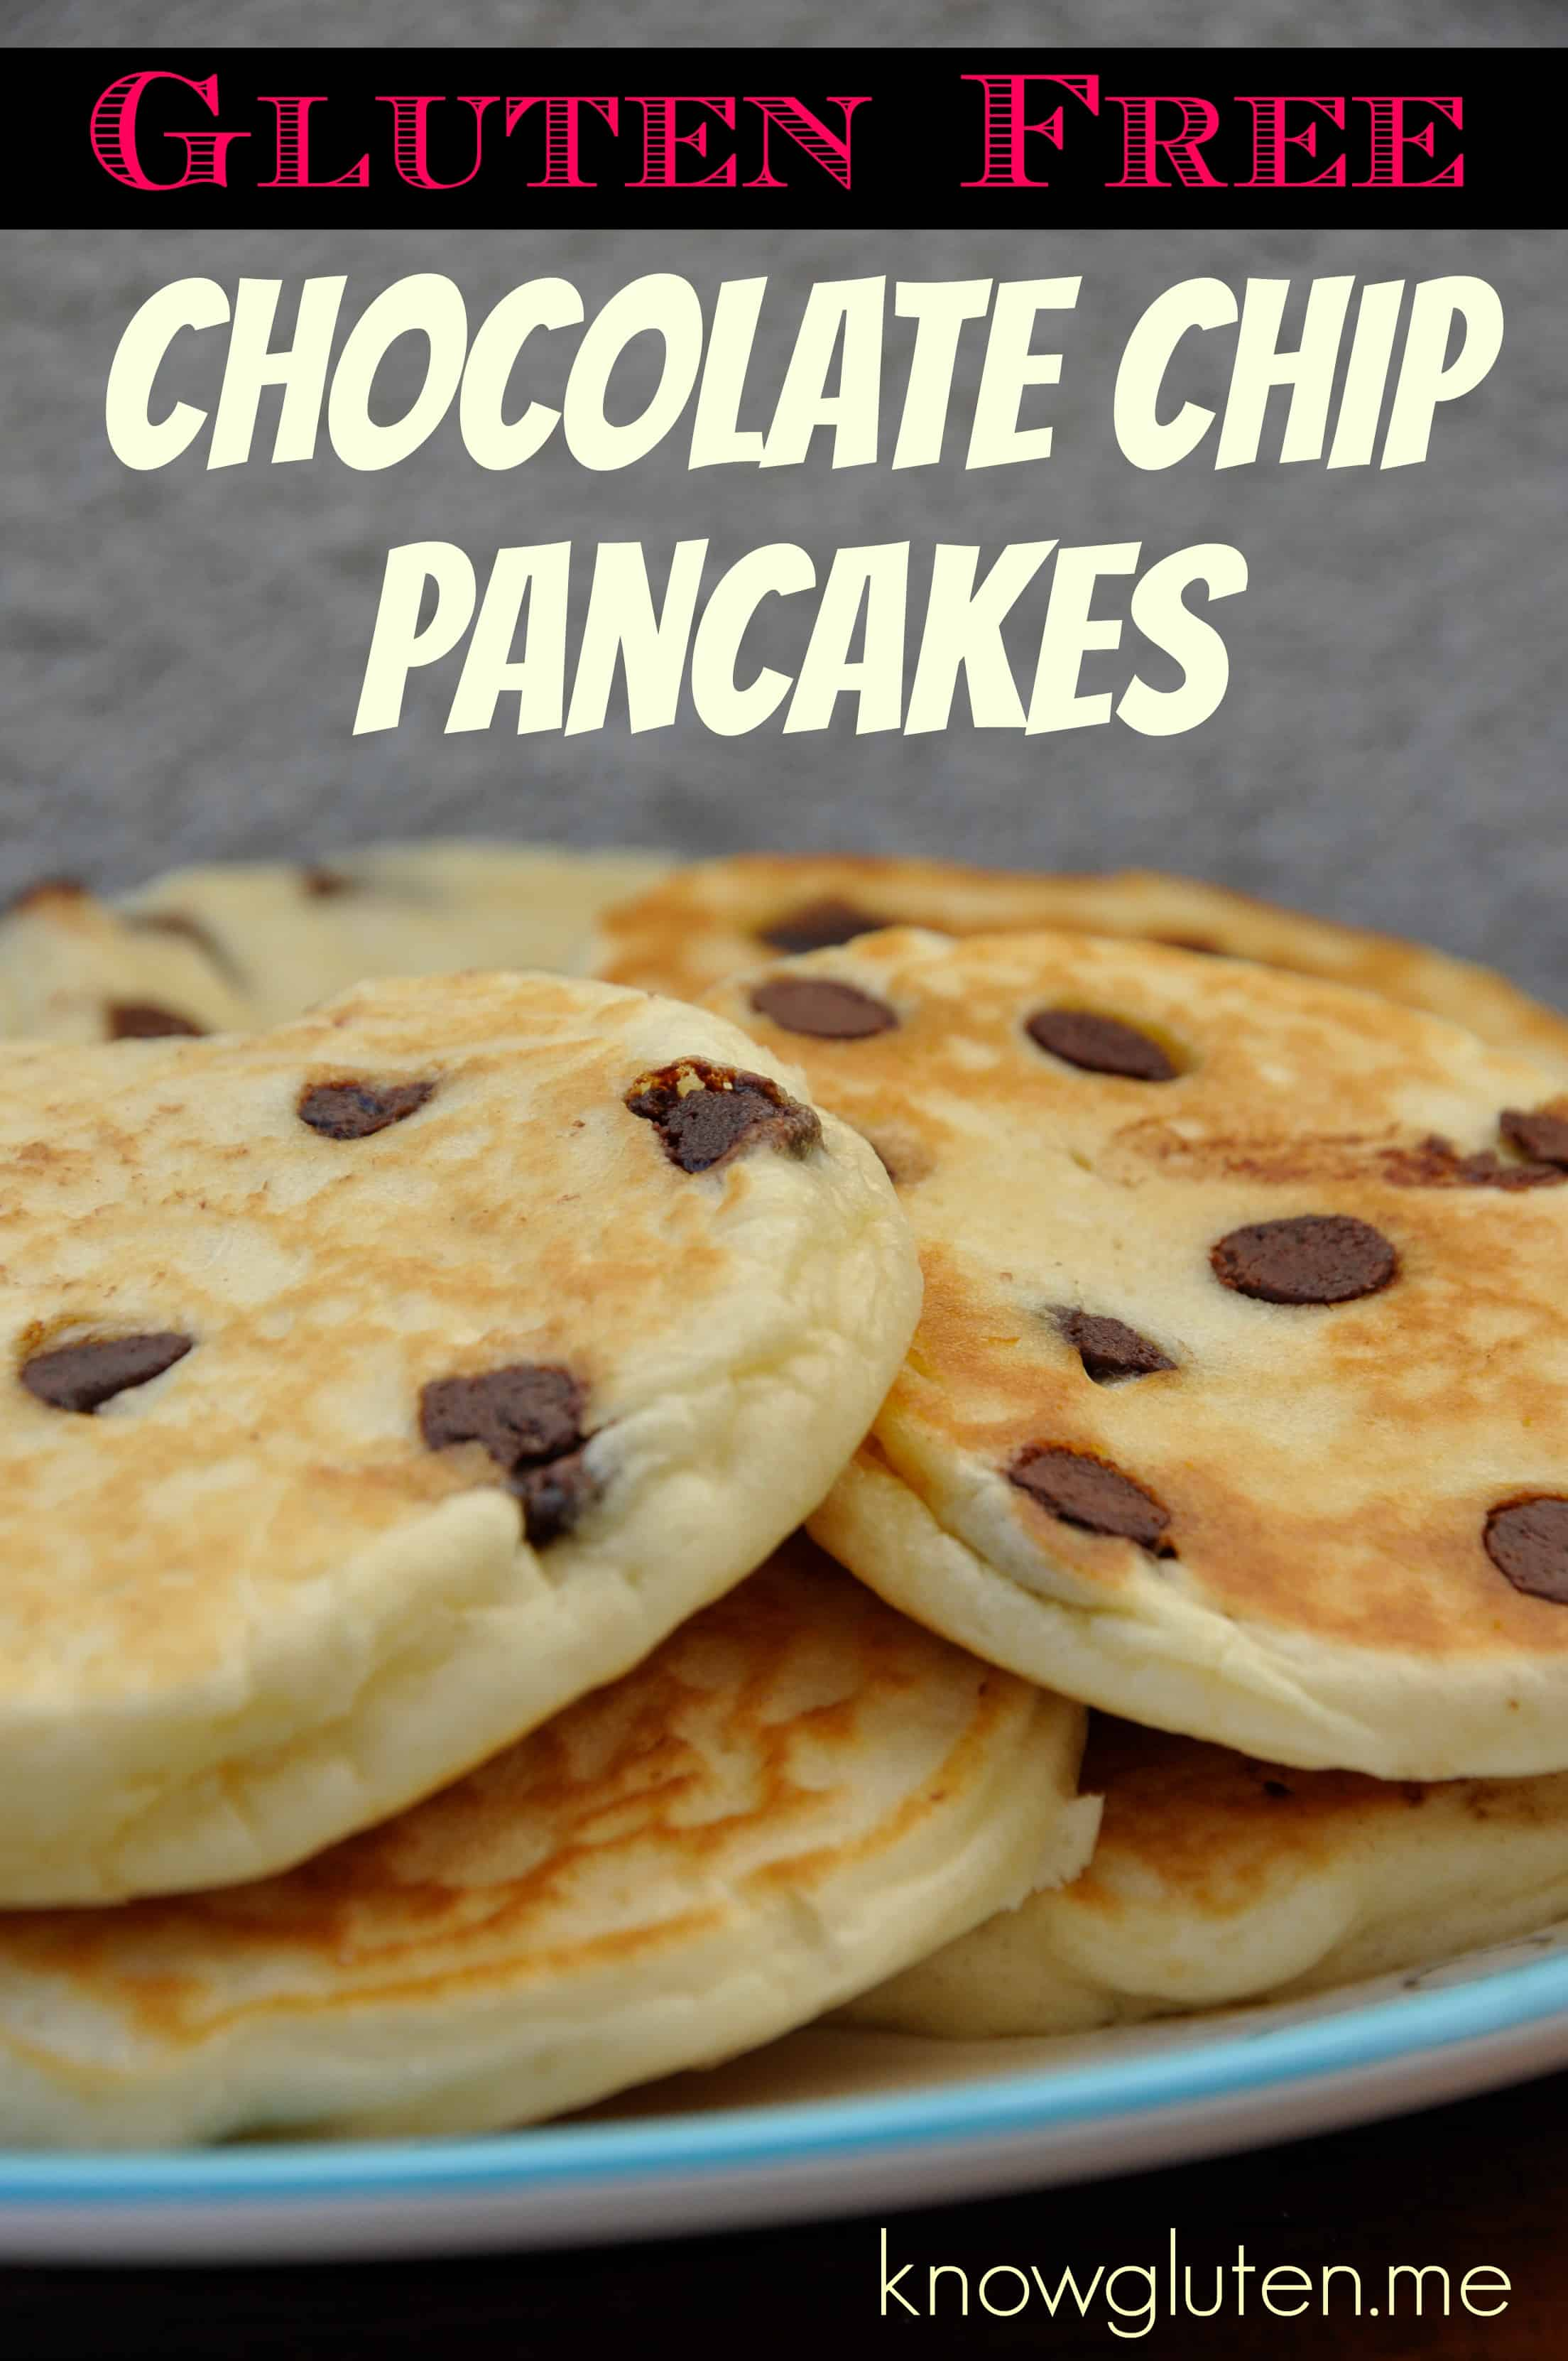 Gluten Free Chocolate Chip Pancakes made with knowgluten.me Thai Rice Flour Baking Mix